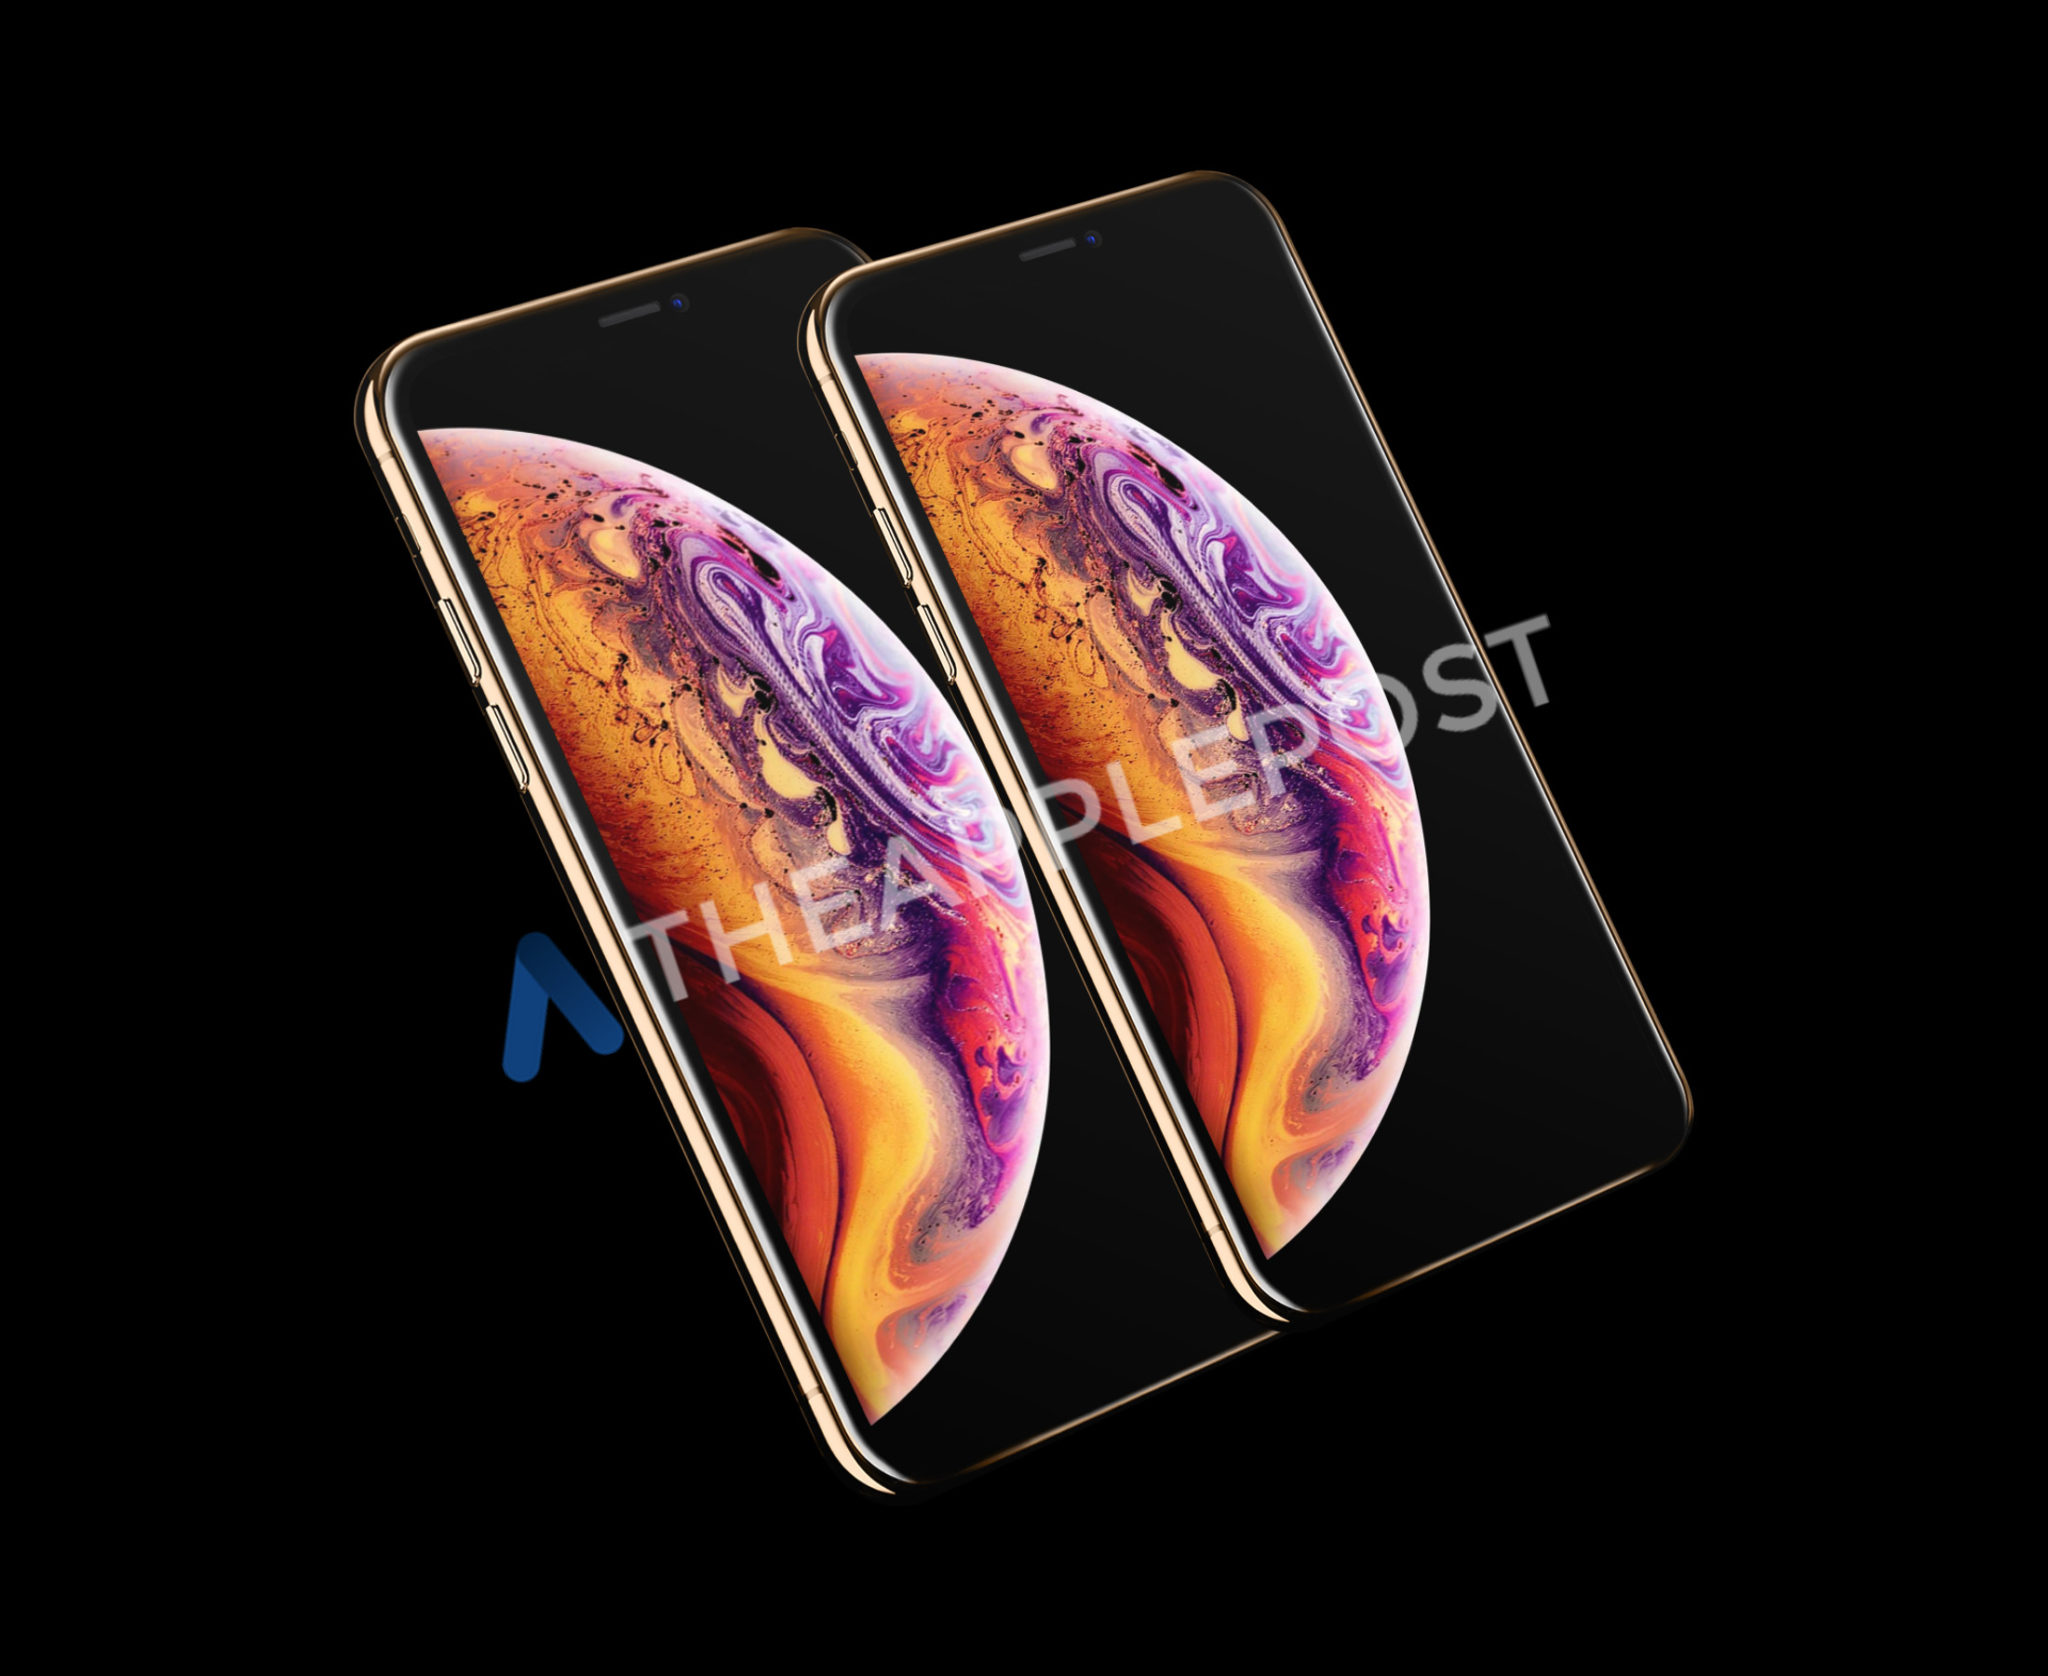 iPhone XS concept images